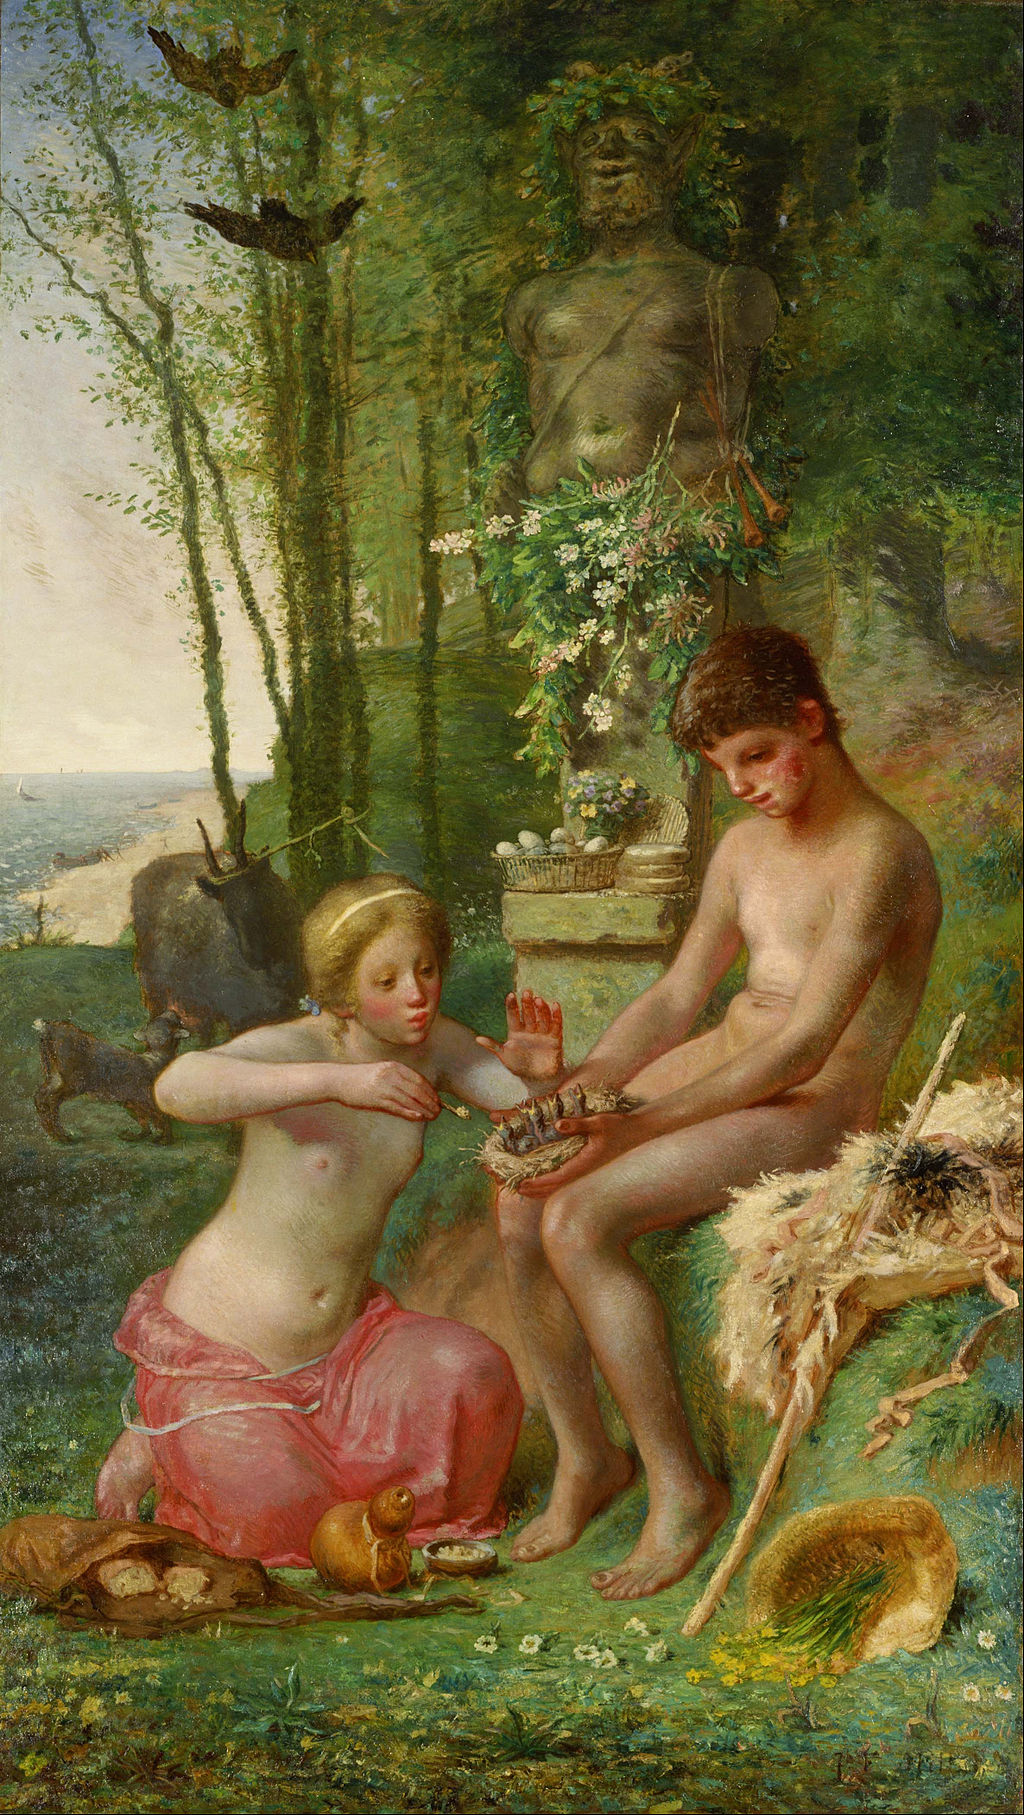 Jean-François Millet - Spring (Daphnis and Chloë) - Google Art Project